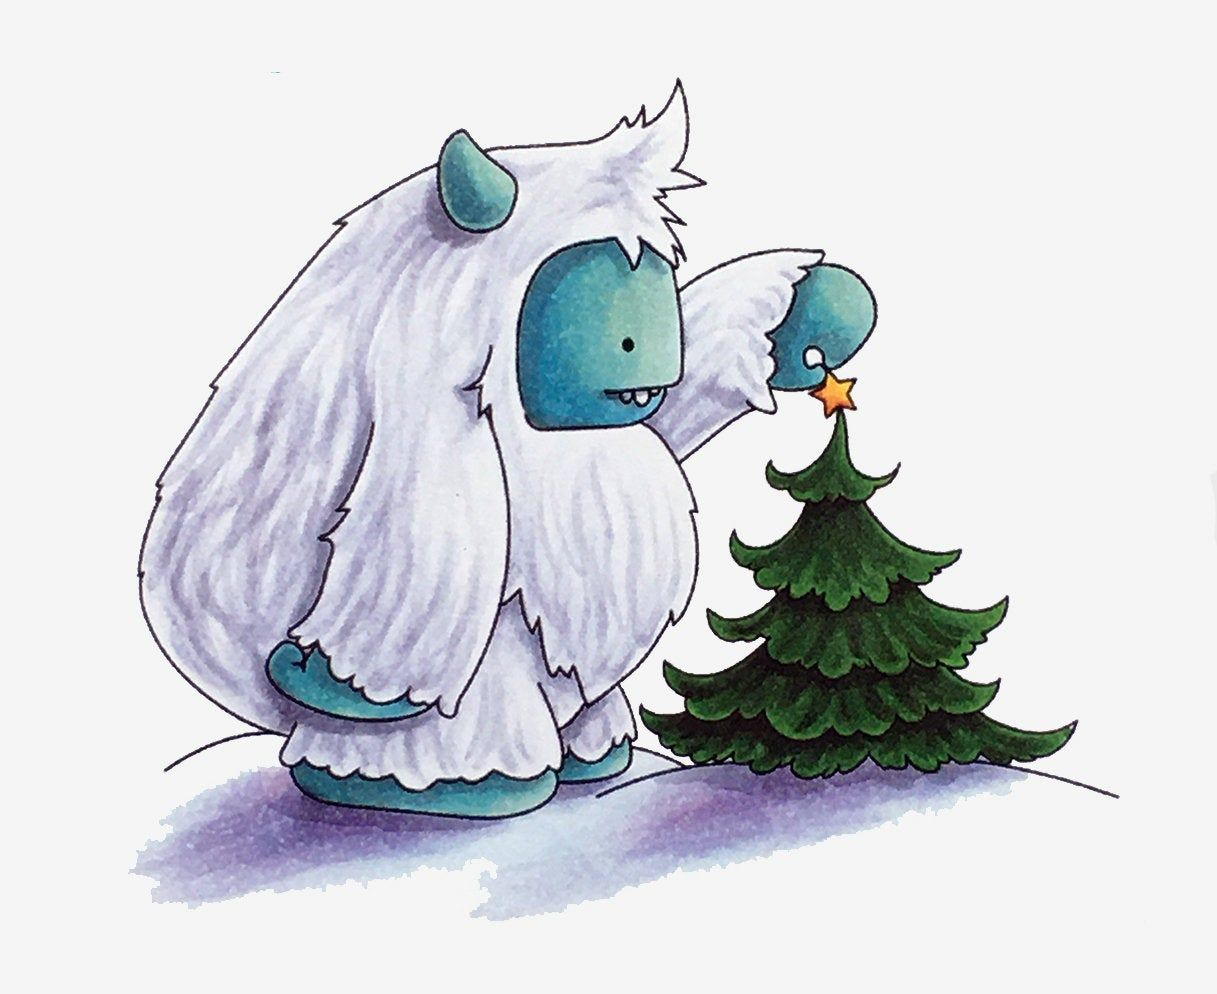 Stamping Bella Cling Rubber Stamps Christmas Yeti With A Star On Top Of Christmas Tree Christmas Stamps Rubber Pop Stickers Christmas Projects